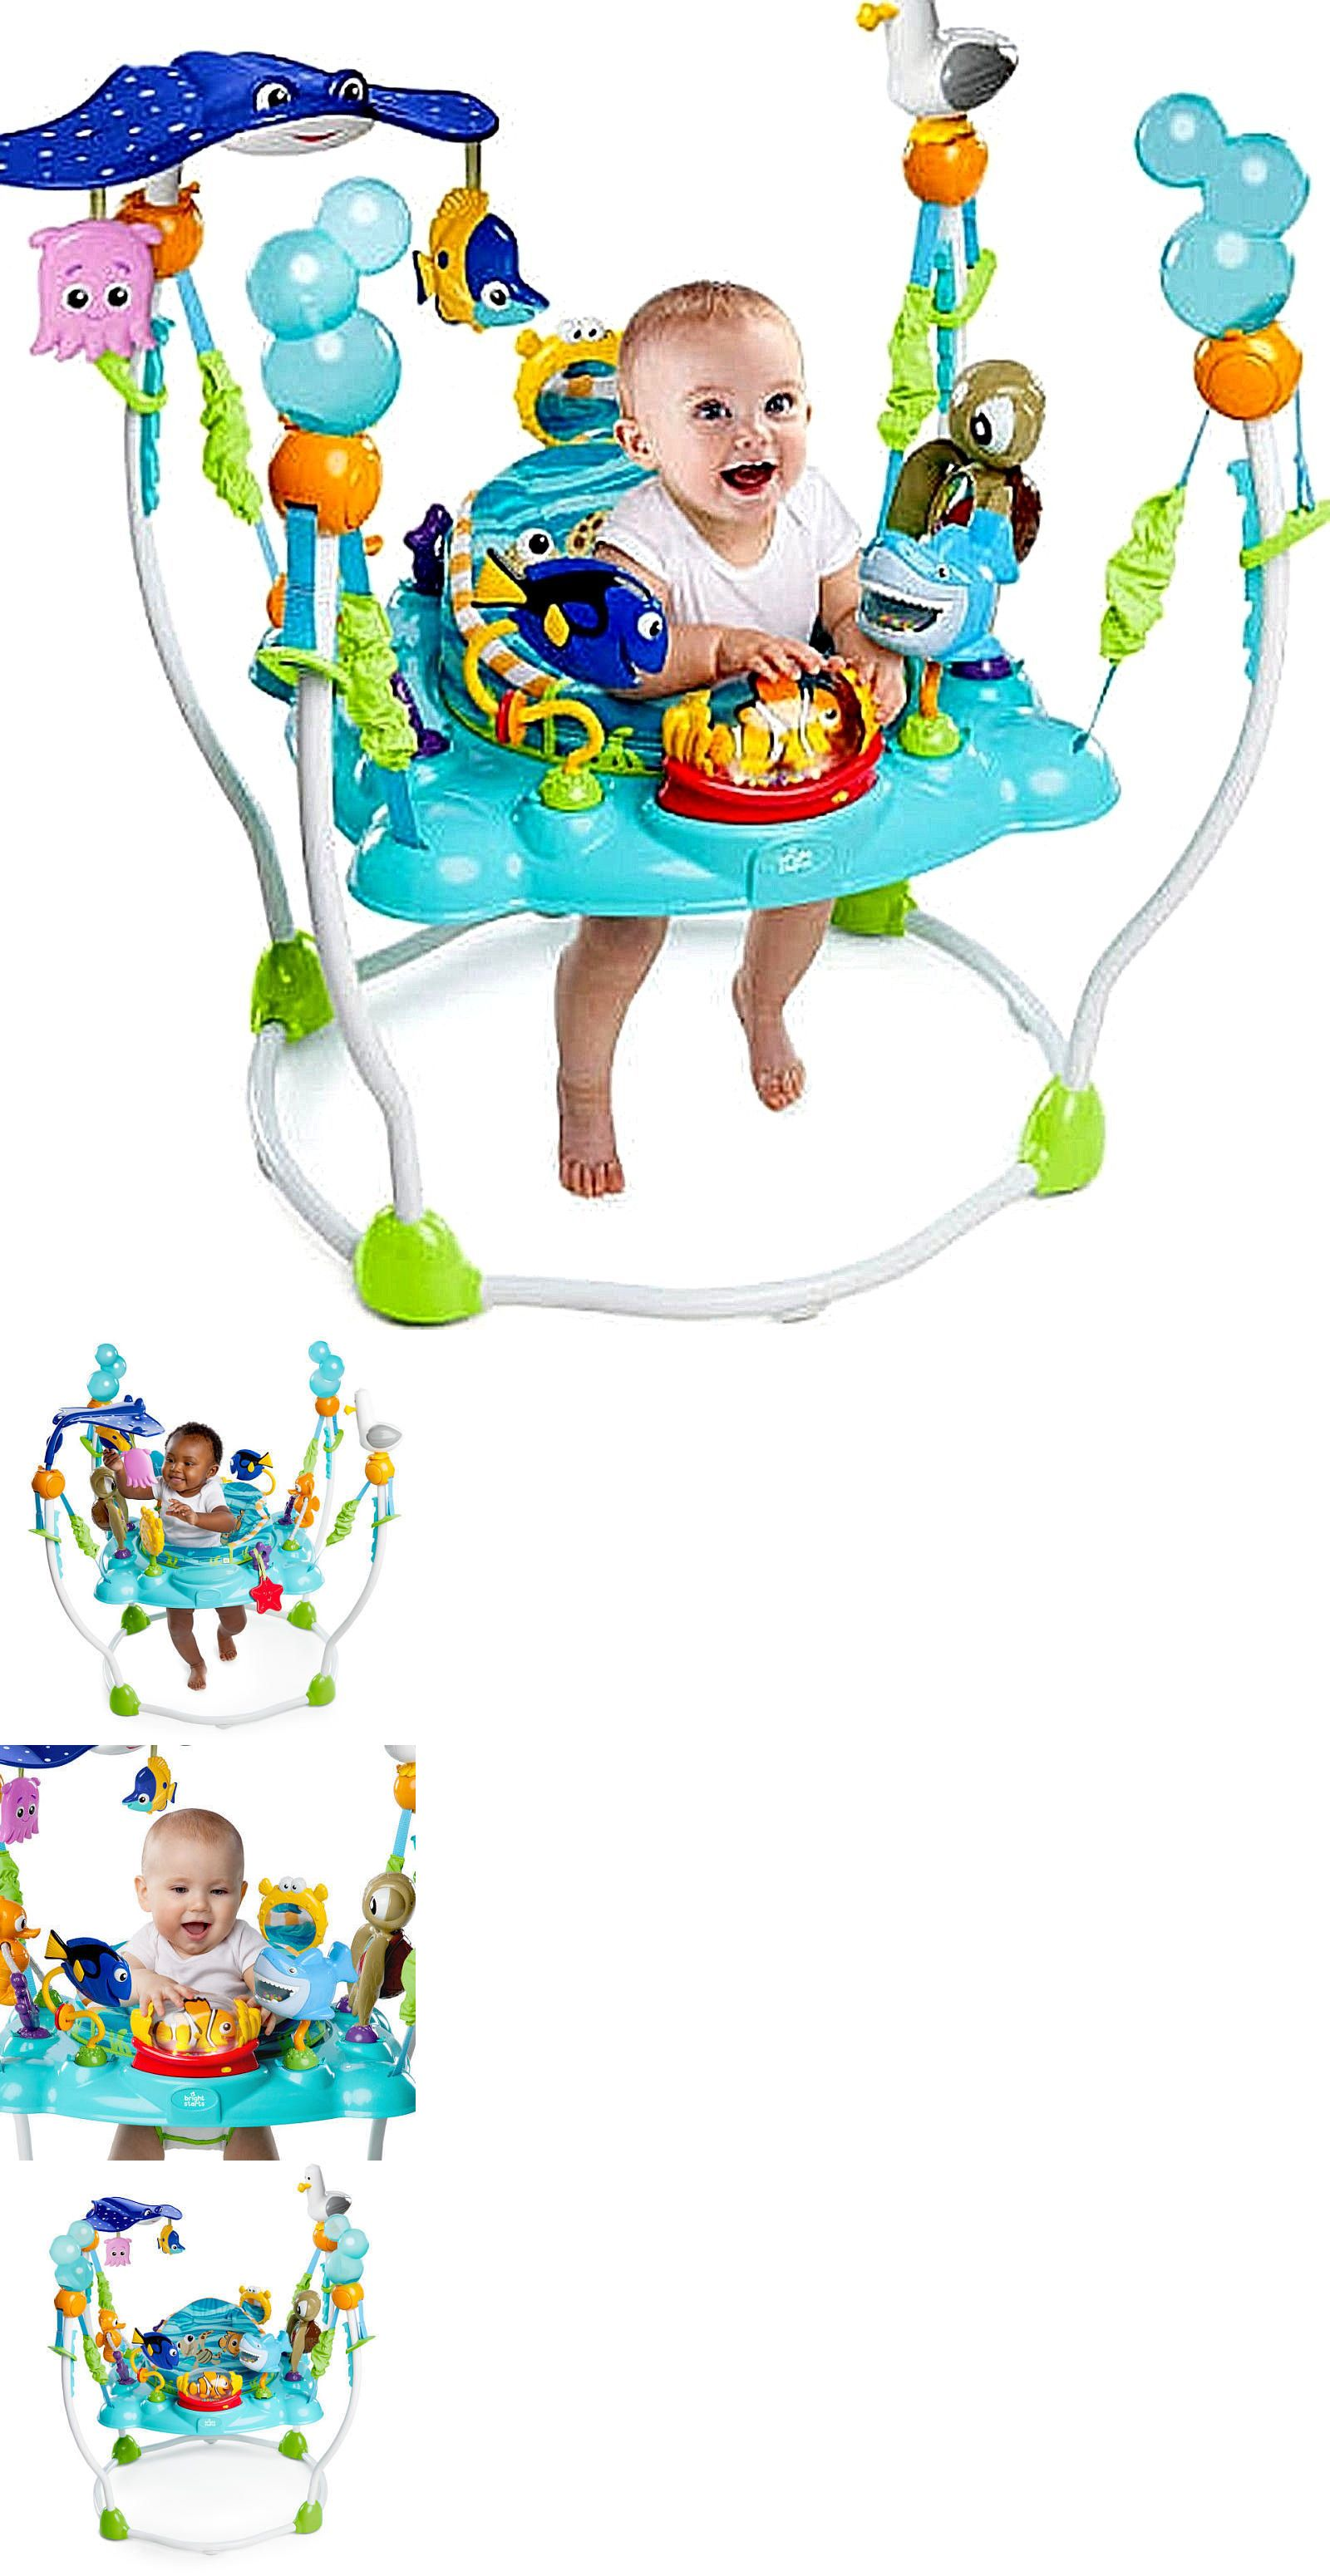 400ce46c39e0 Baby Jumper Disney Finding Nemo Dory Sea activities seat Bouncer ...